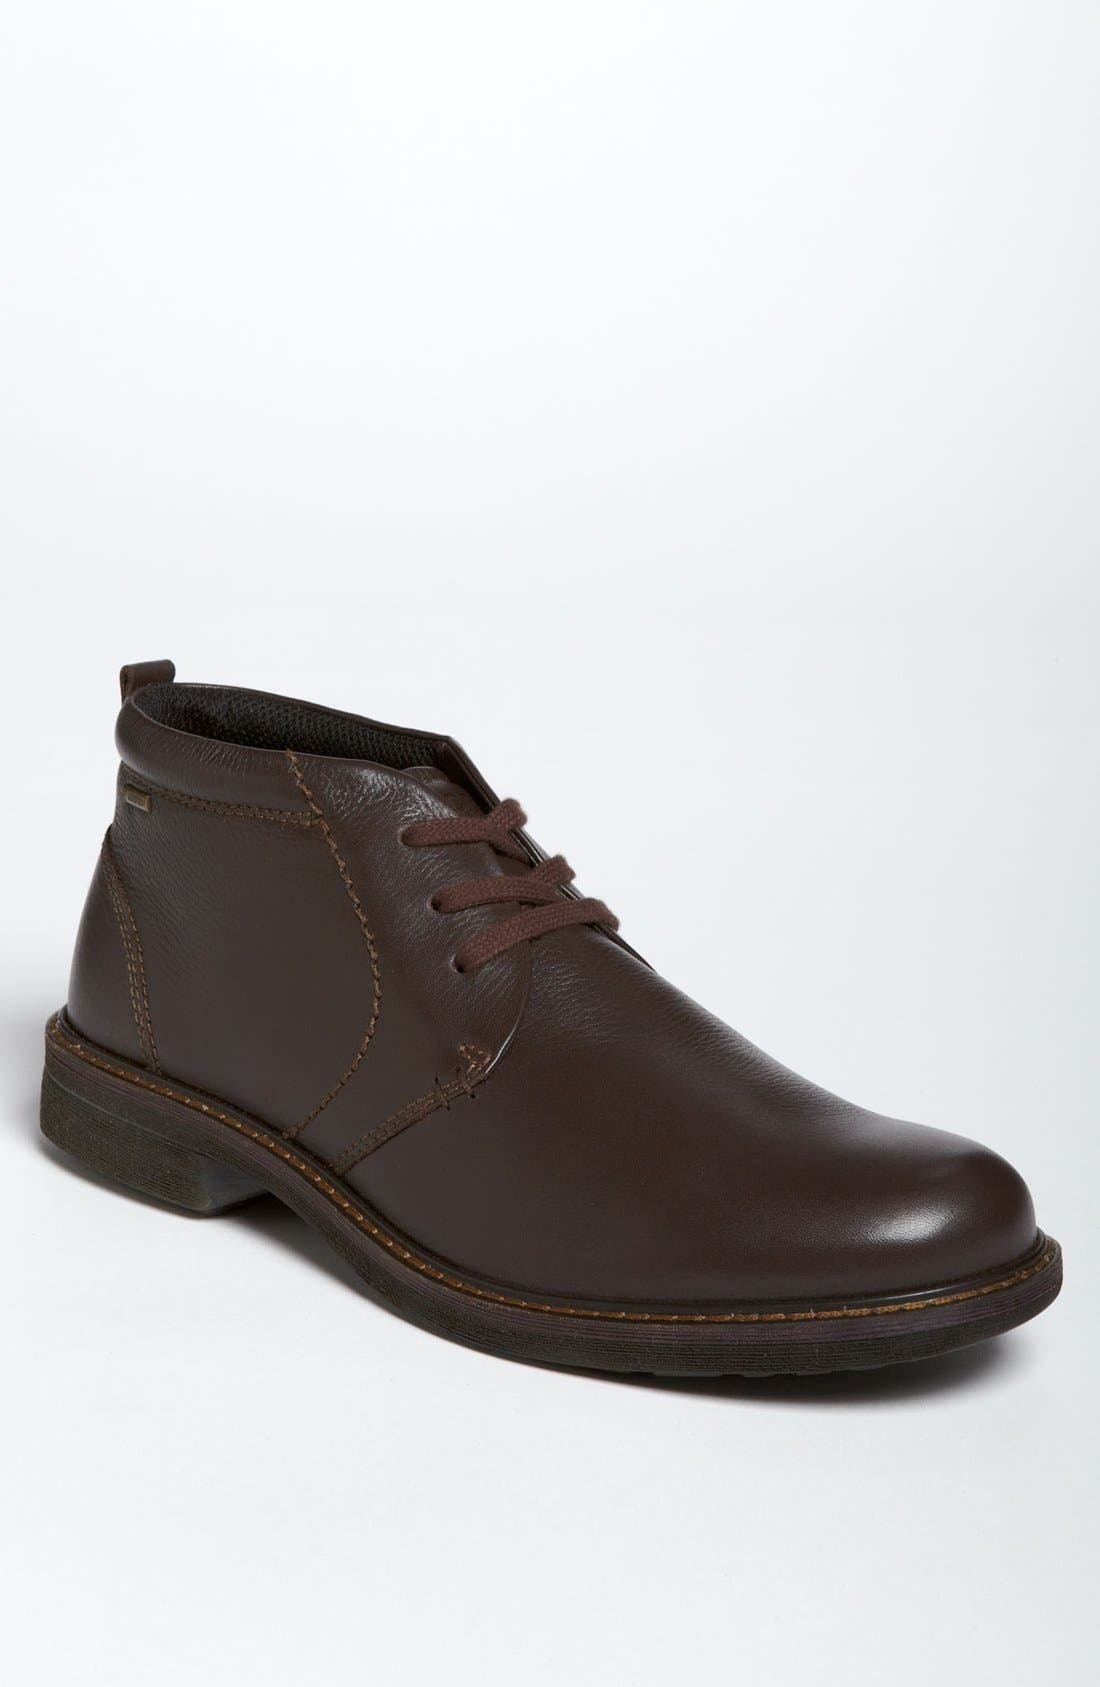 Alternate Image 1 Selected - ECCO 'Turn' Chukka Boot (Men)